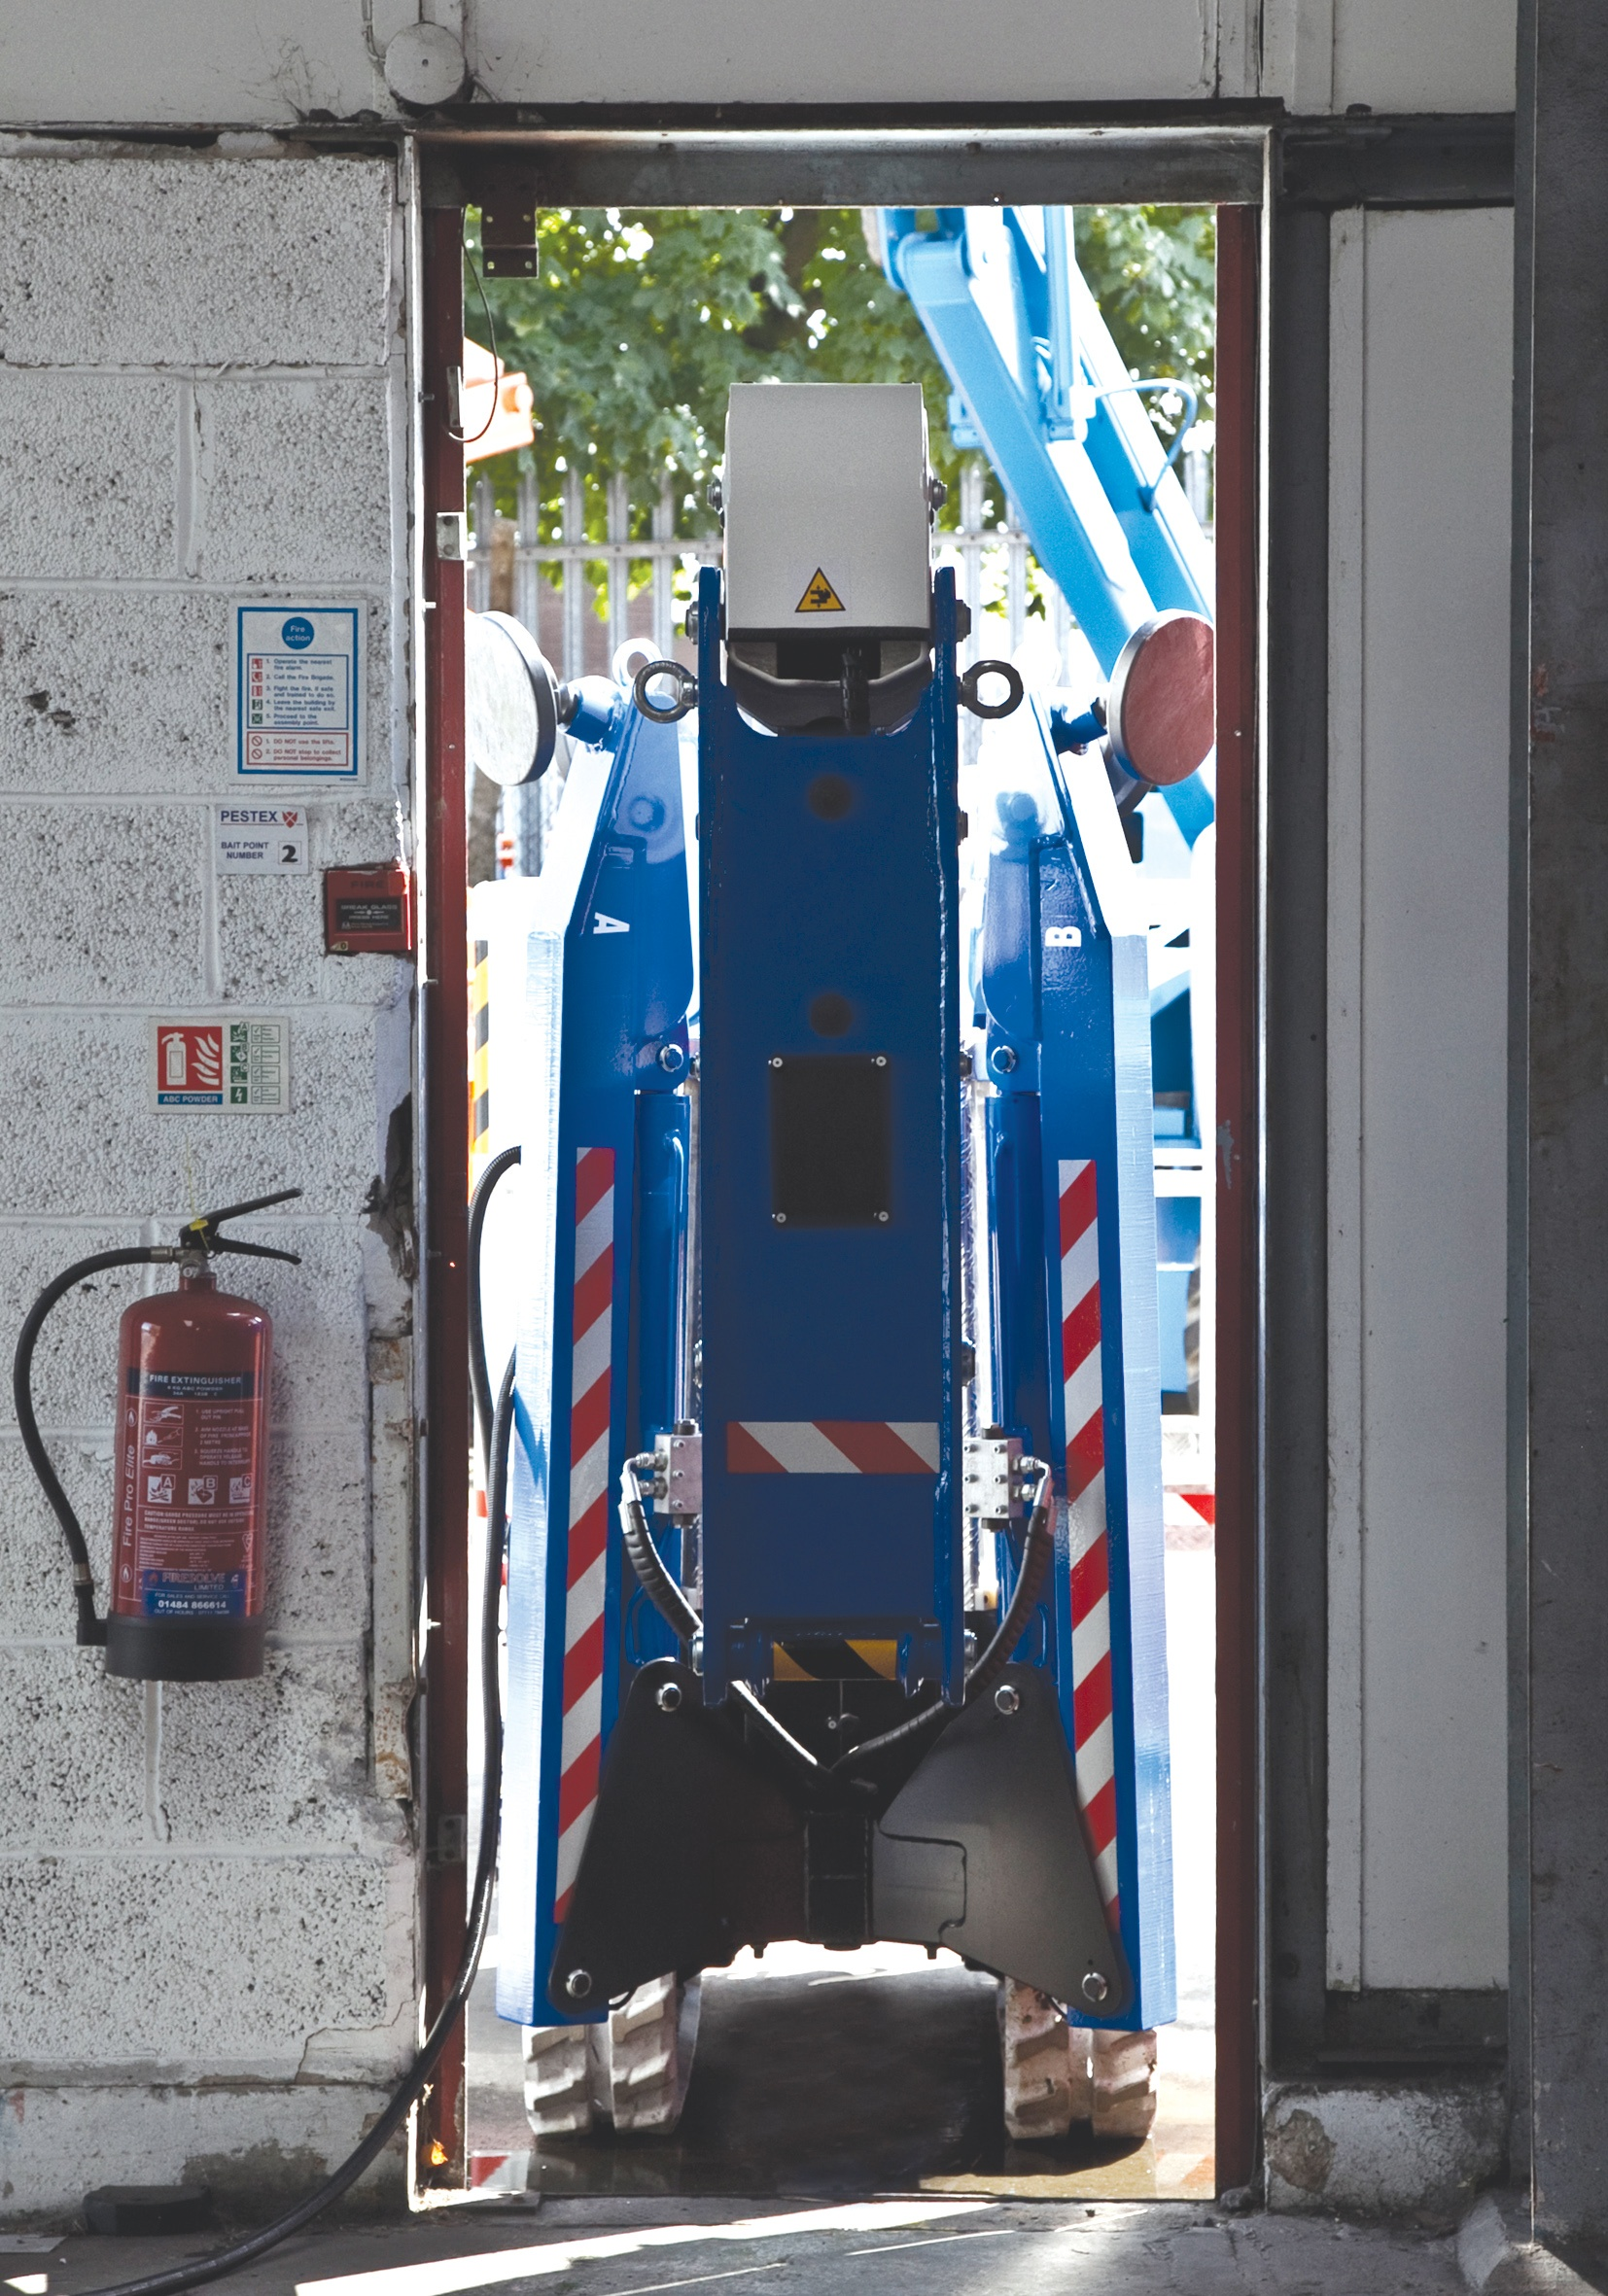 Bluelift spider lift travelling through narrow doorway